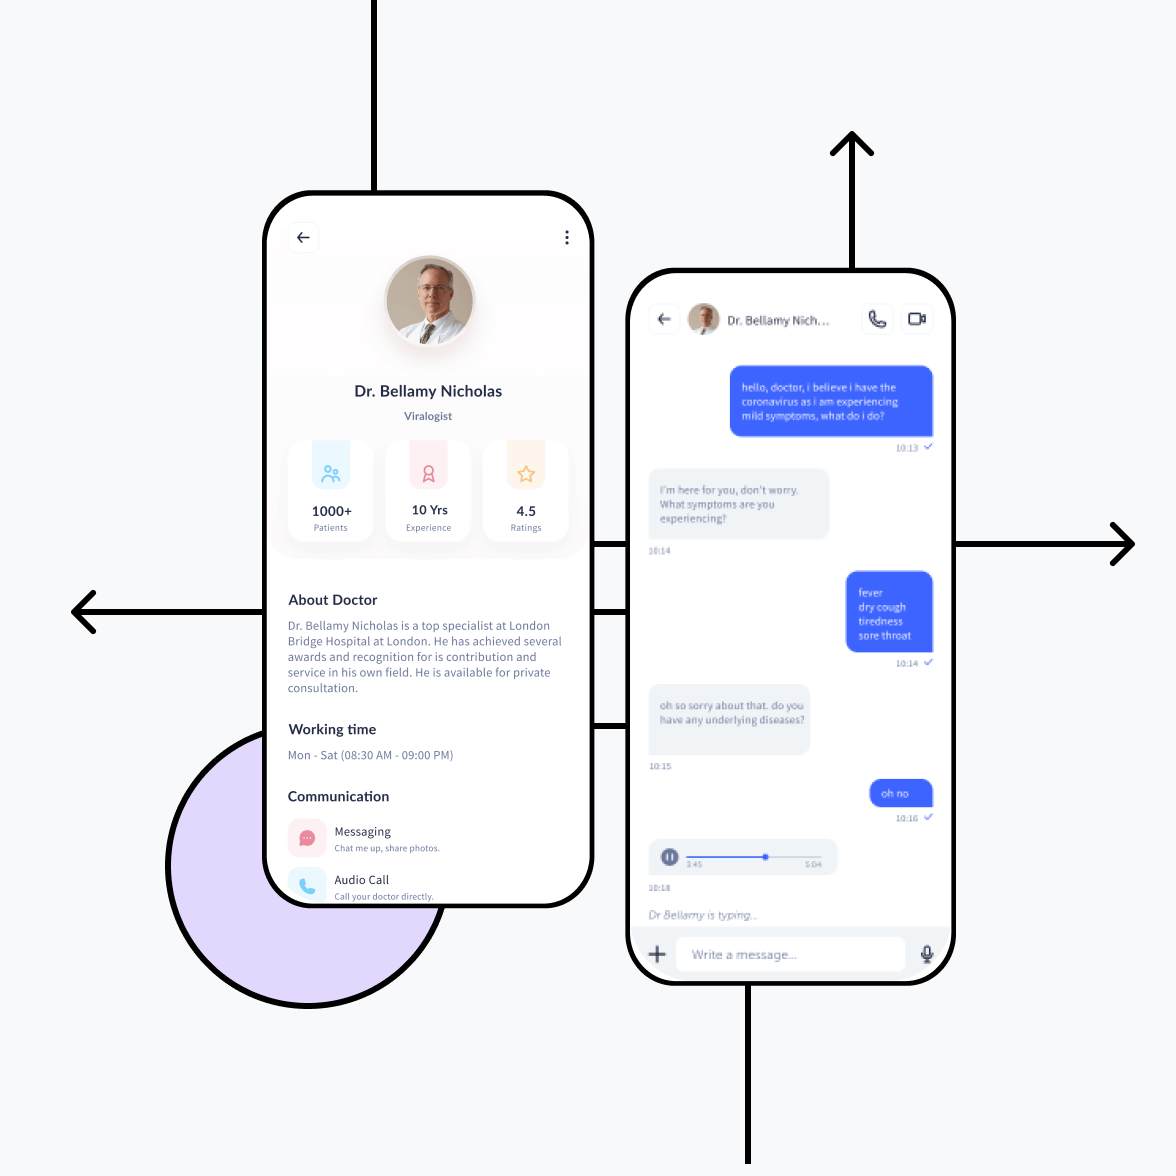 Dental app chat screen and doctor's profile